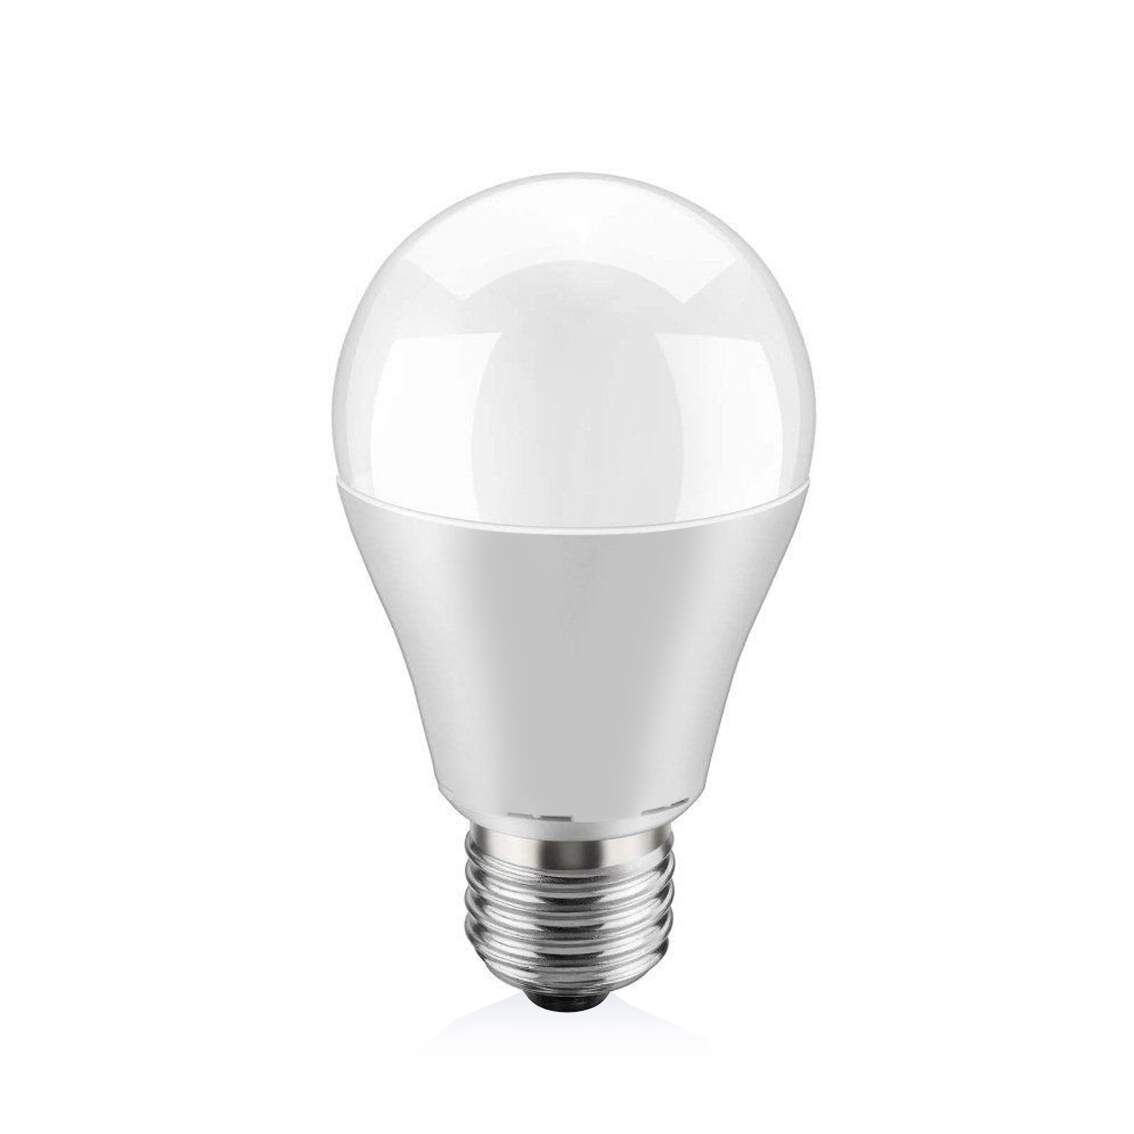 Lâmpada LED bulbo 15w